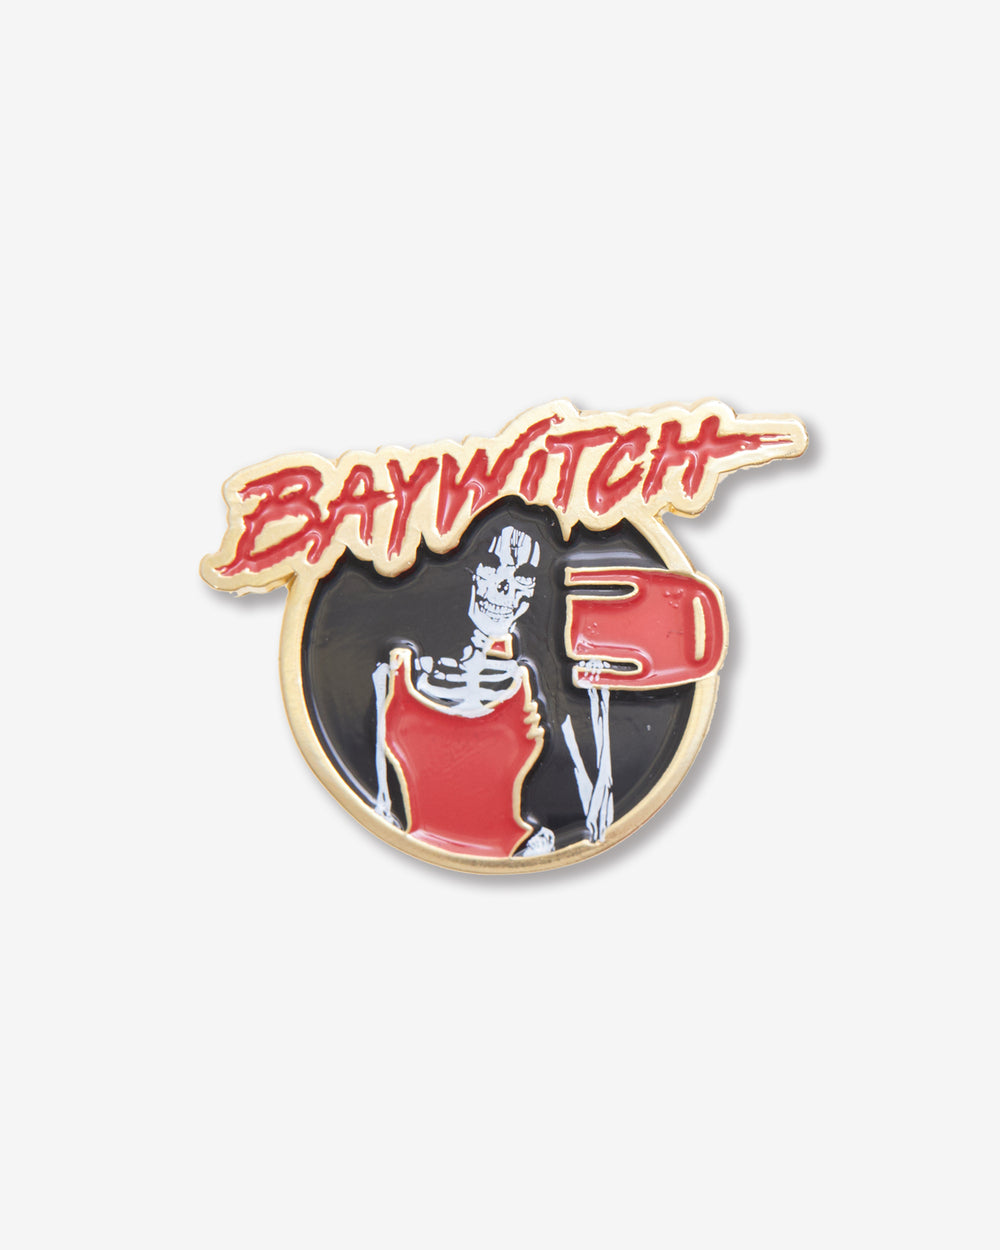 Baywitch Enamel Pin